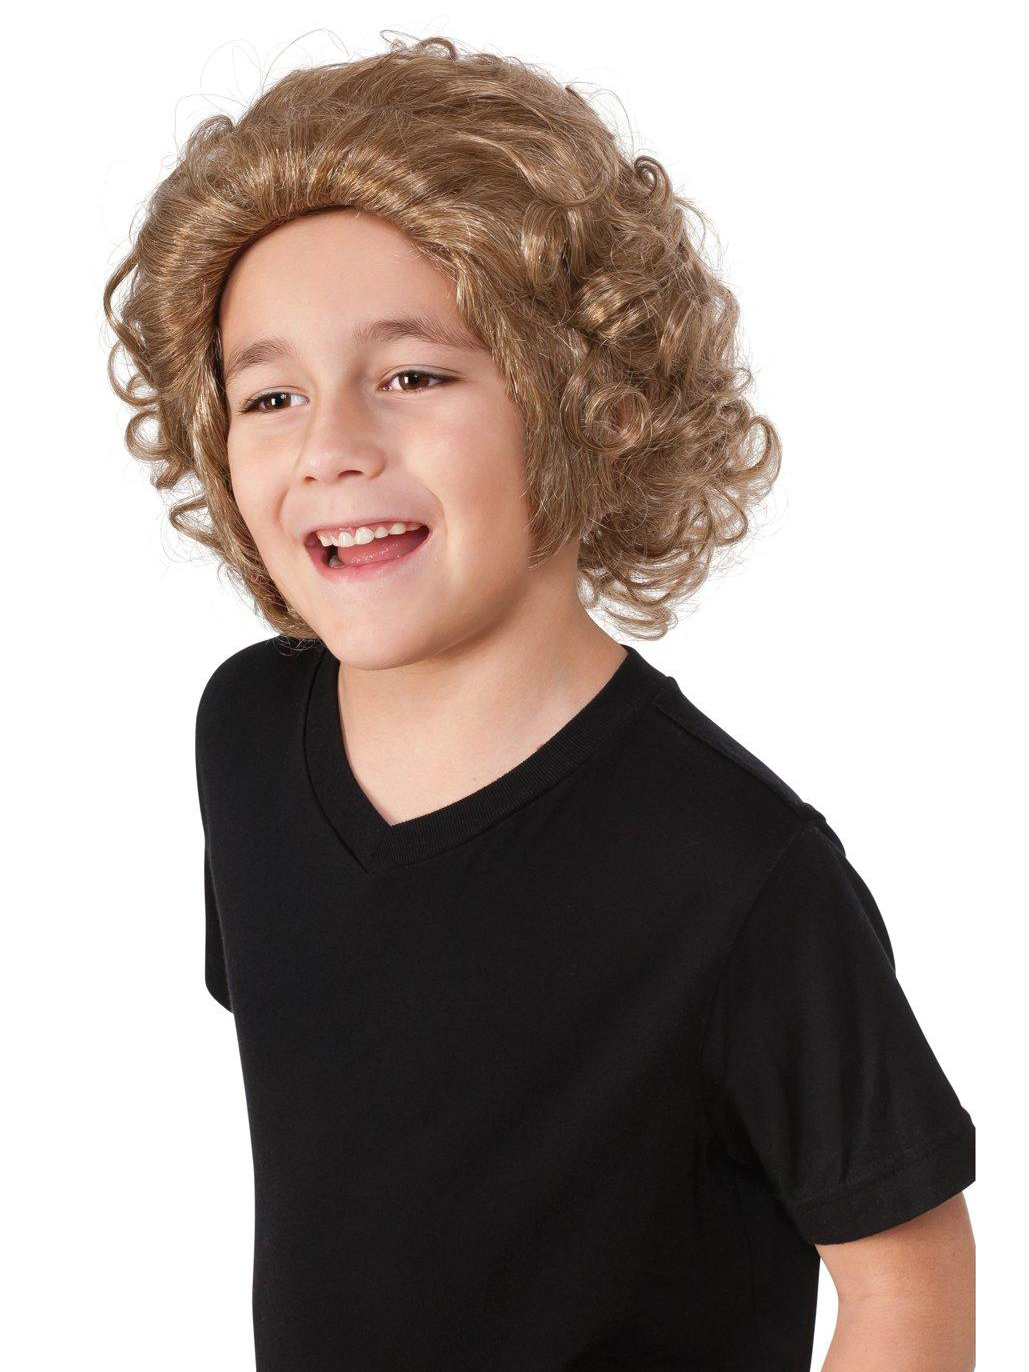 Willy Wonka the Chocolate Factory: Willy Wonka Child Wig 245358